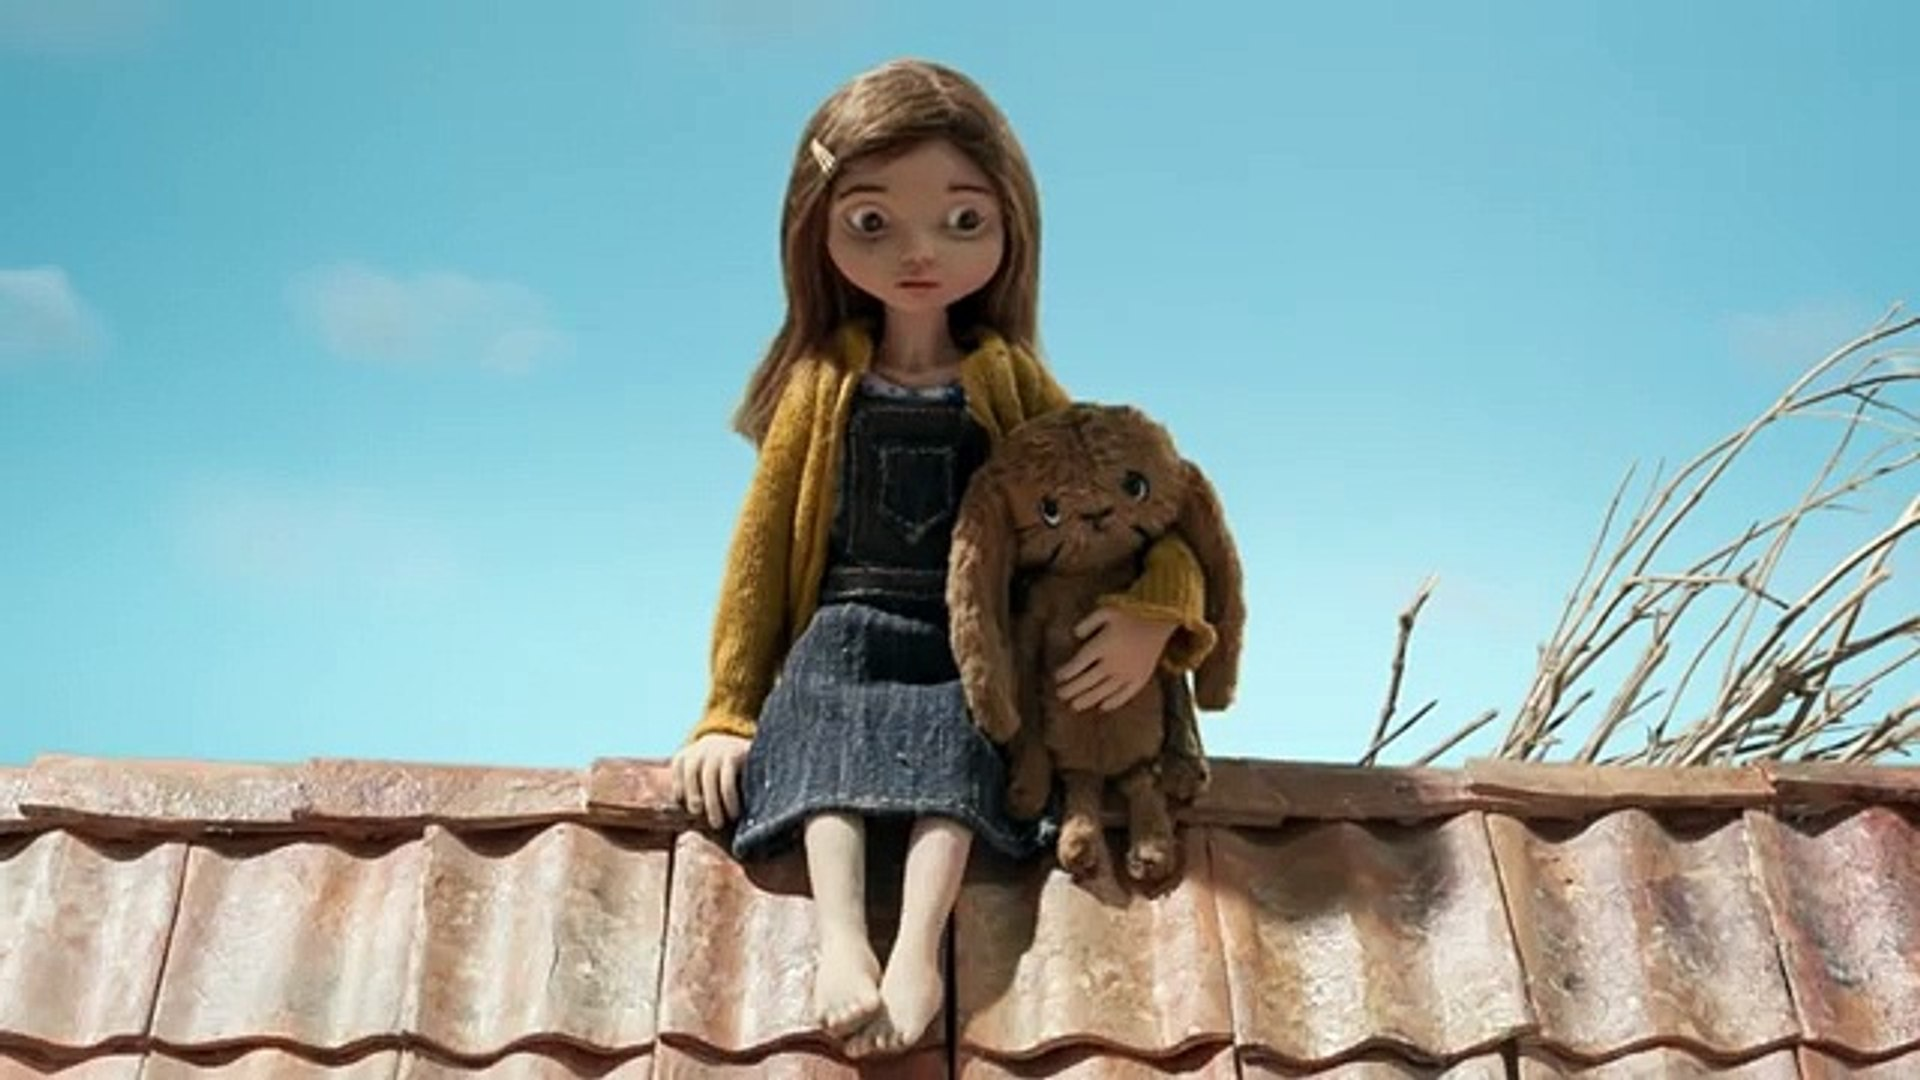 Award Winning-- Animated Short Film- -Lili Short Film- by Hani Dombe & Tom Kouris